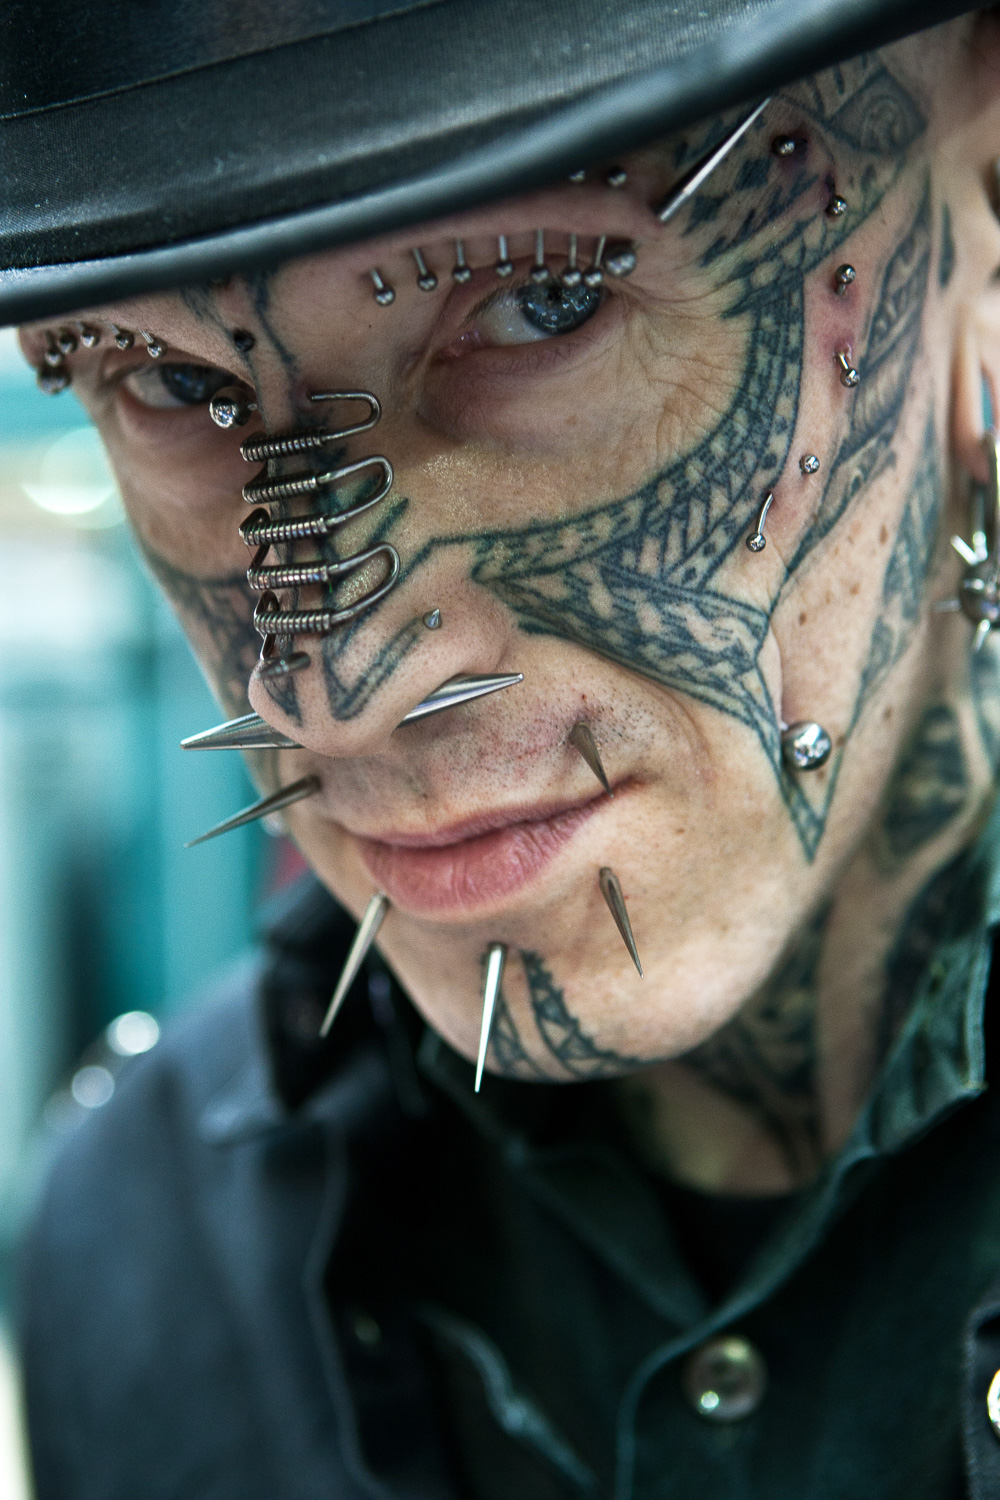 London tattoo convetion, 2010